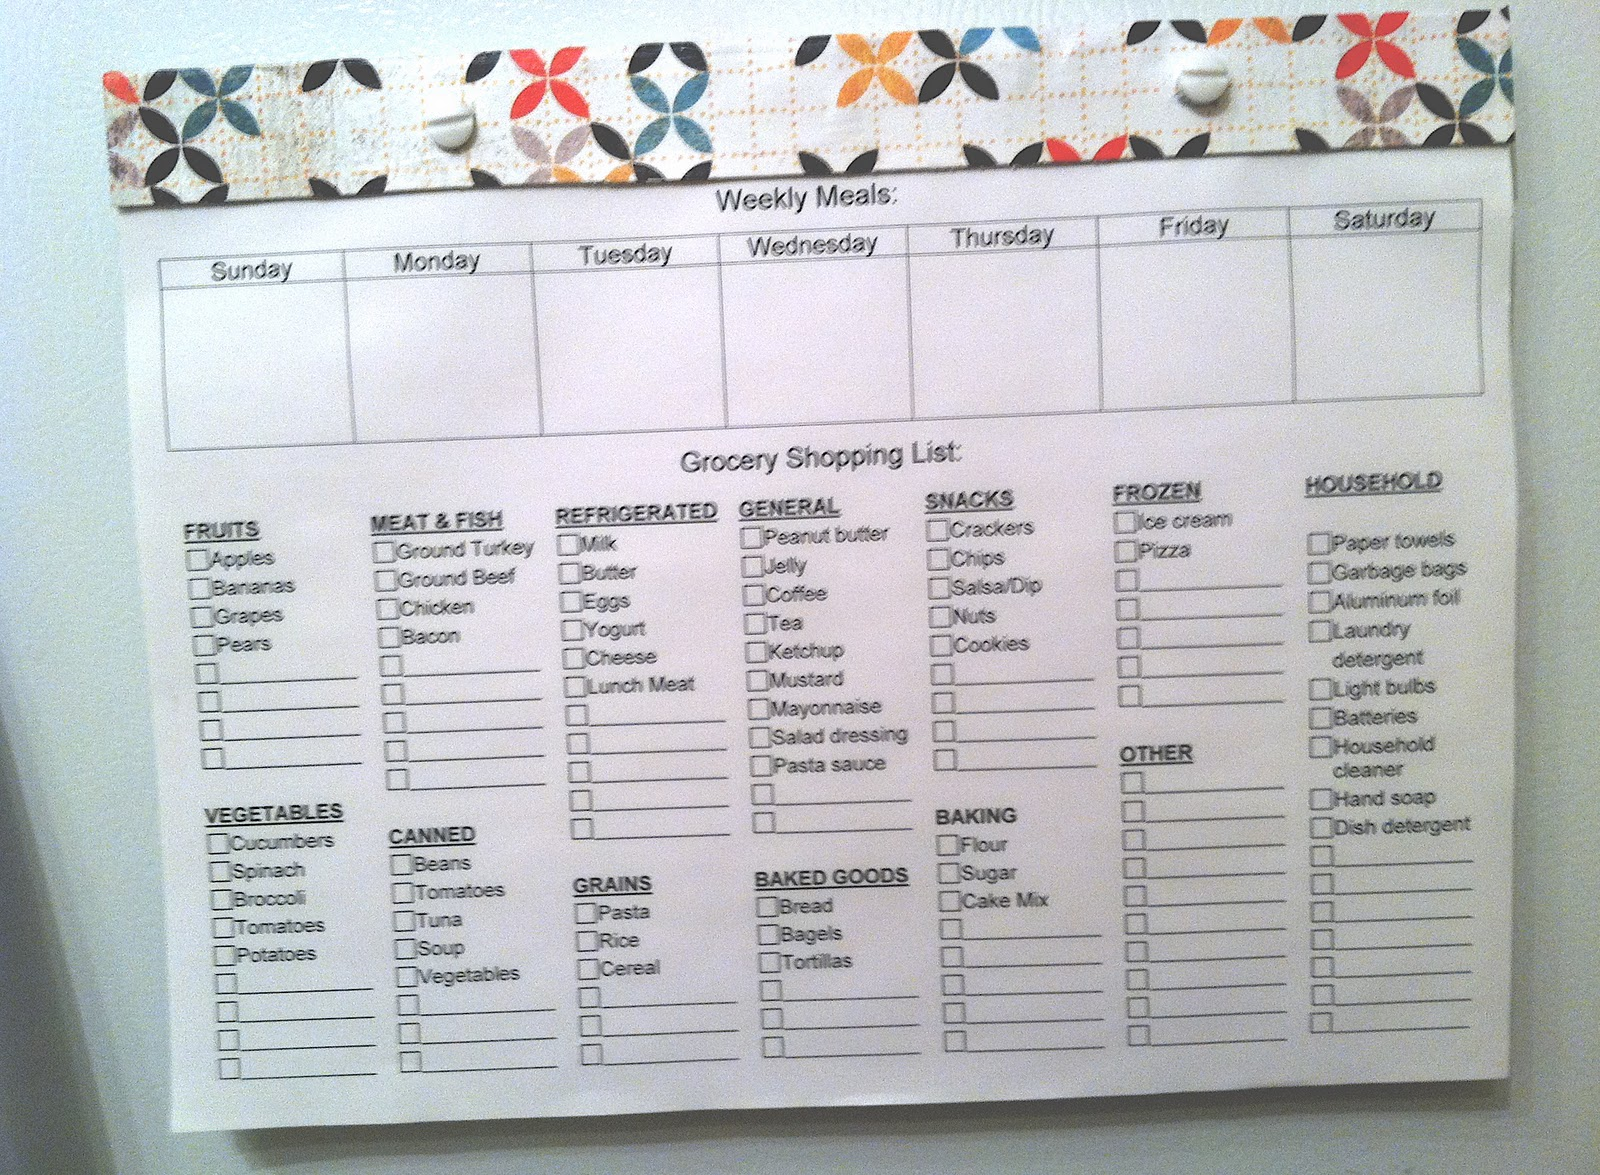 Weekly Meal Planner And Grocery List  Grocery List Examples